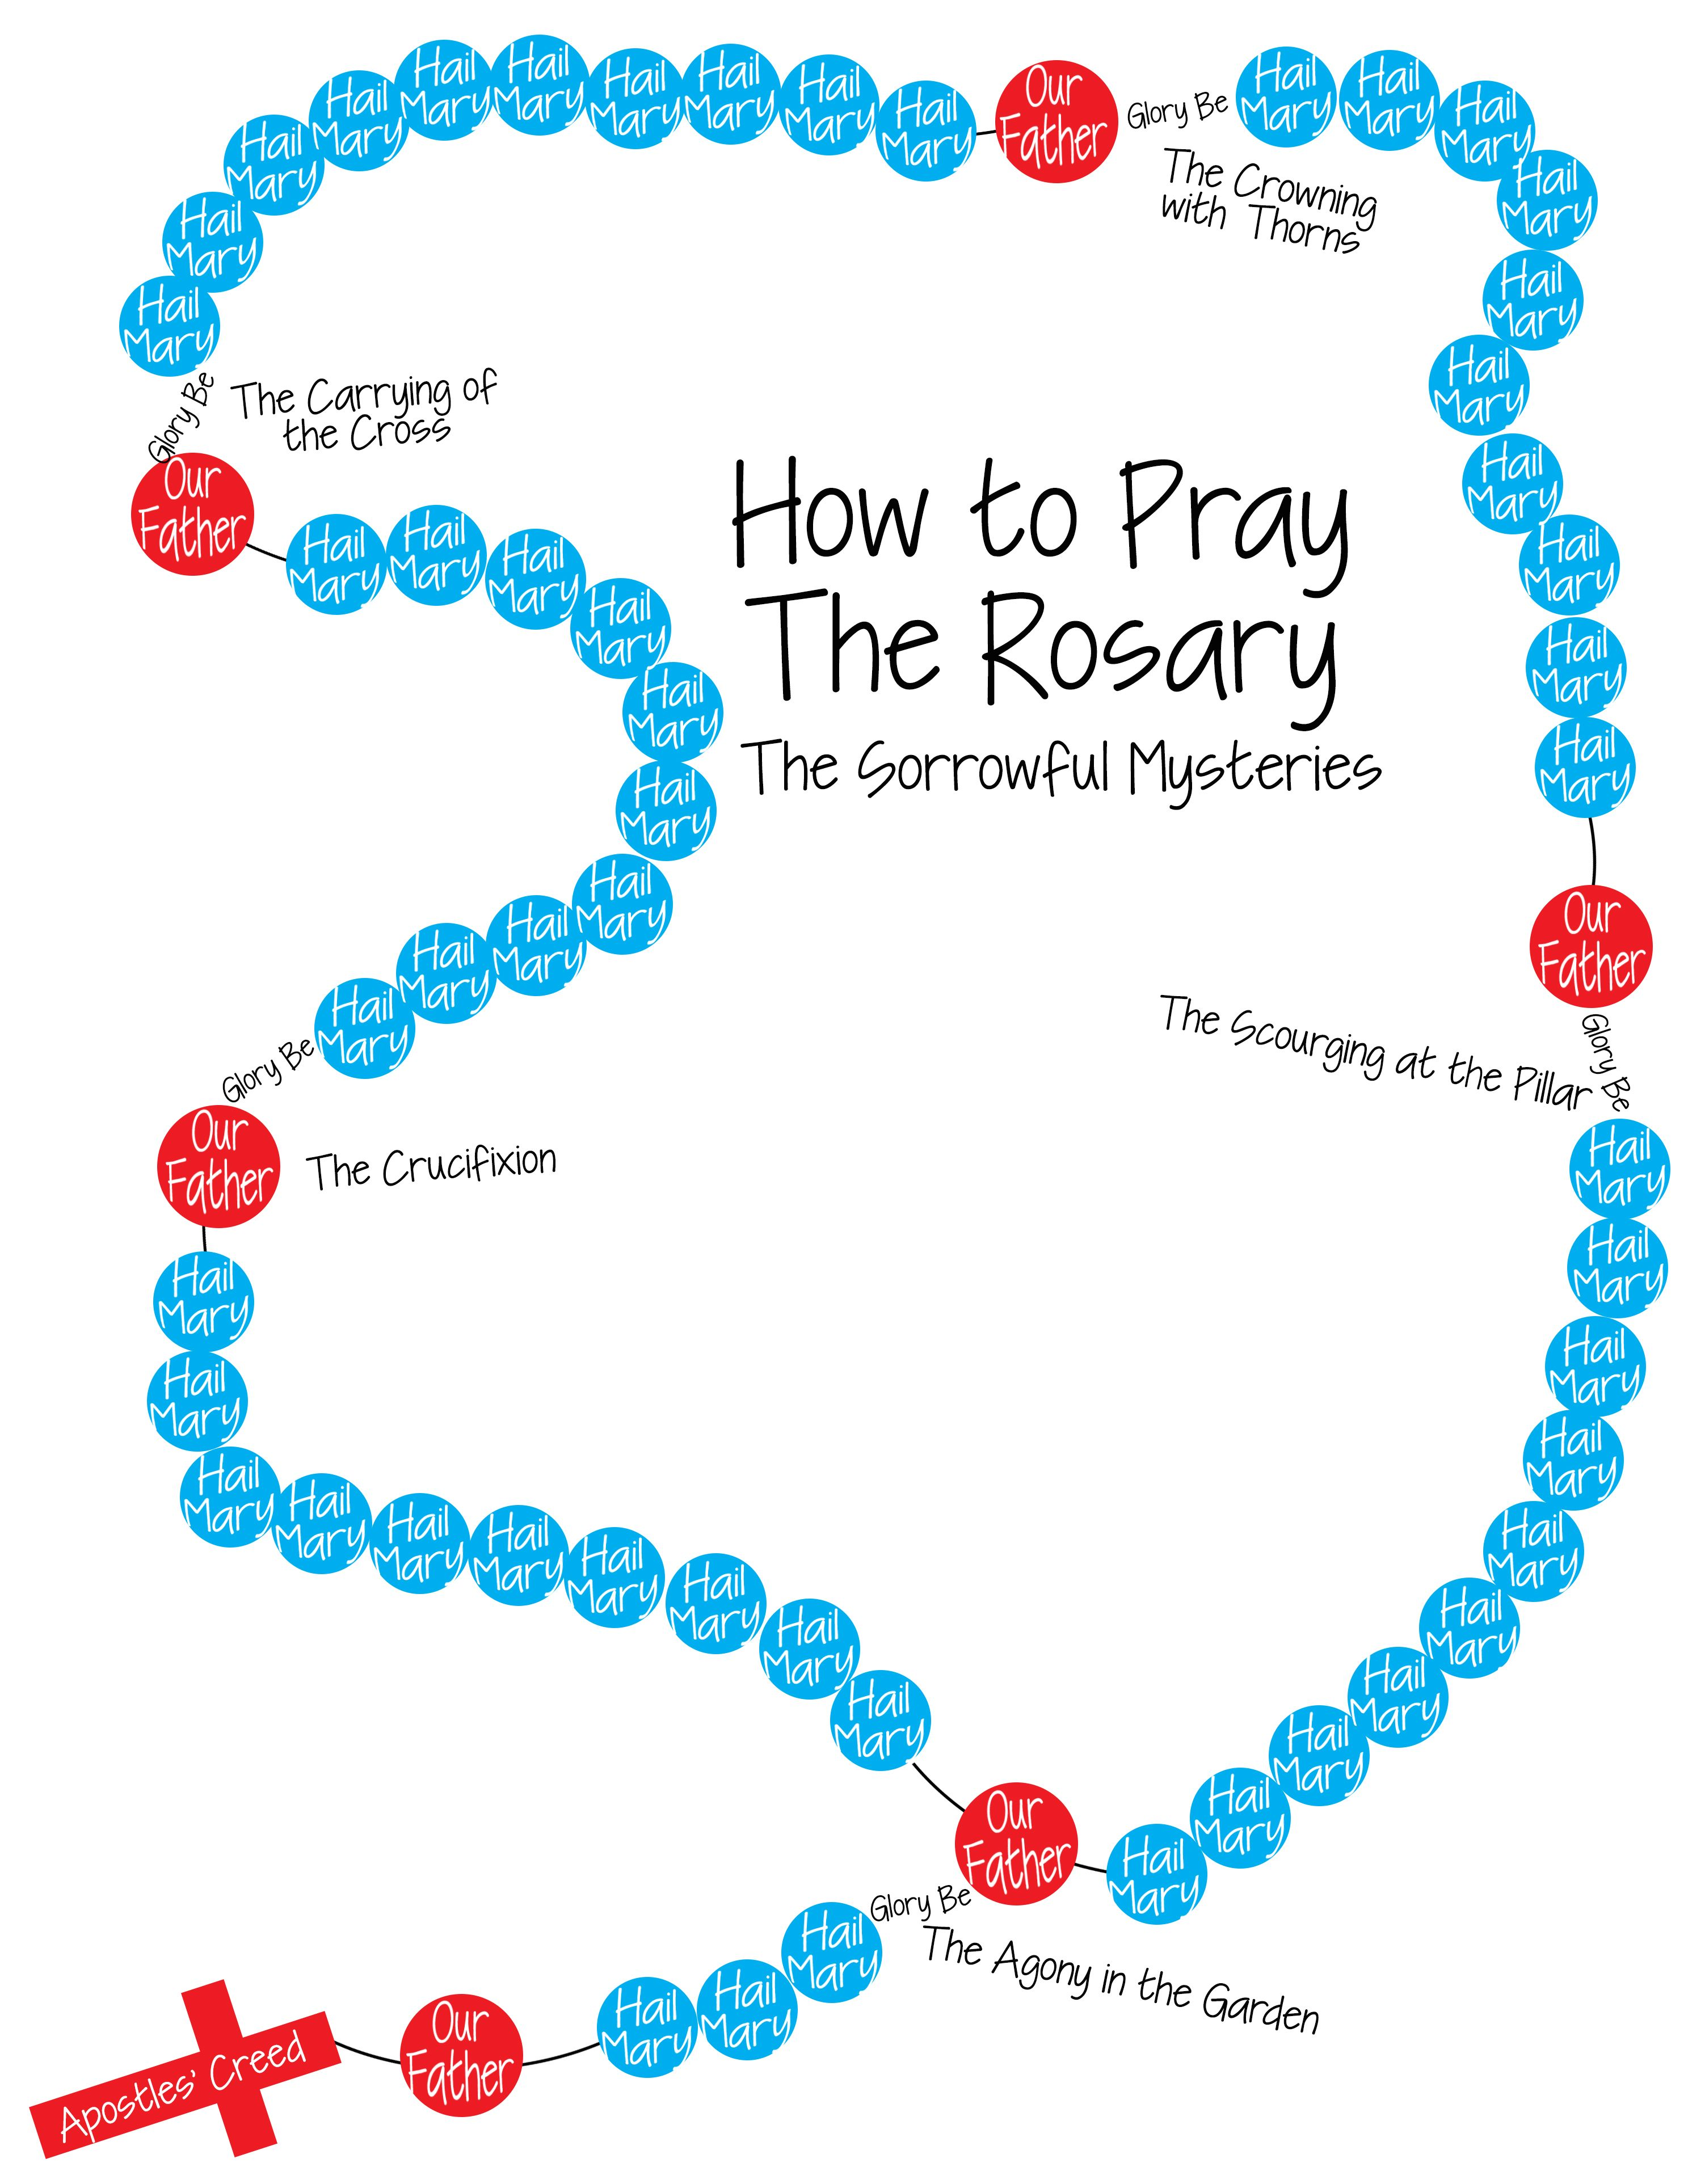 How To Pray The Rosary Visual Aid For Kids